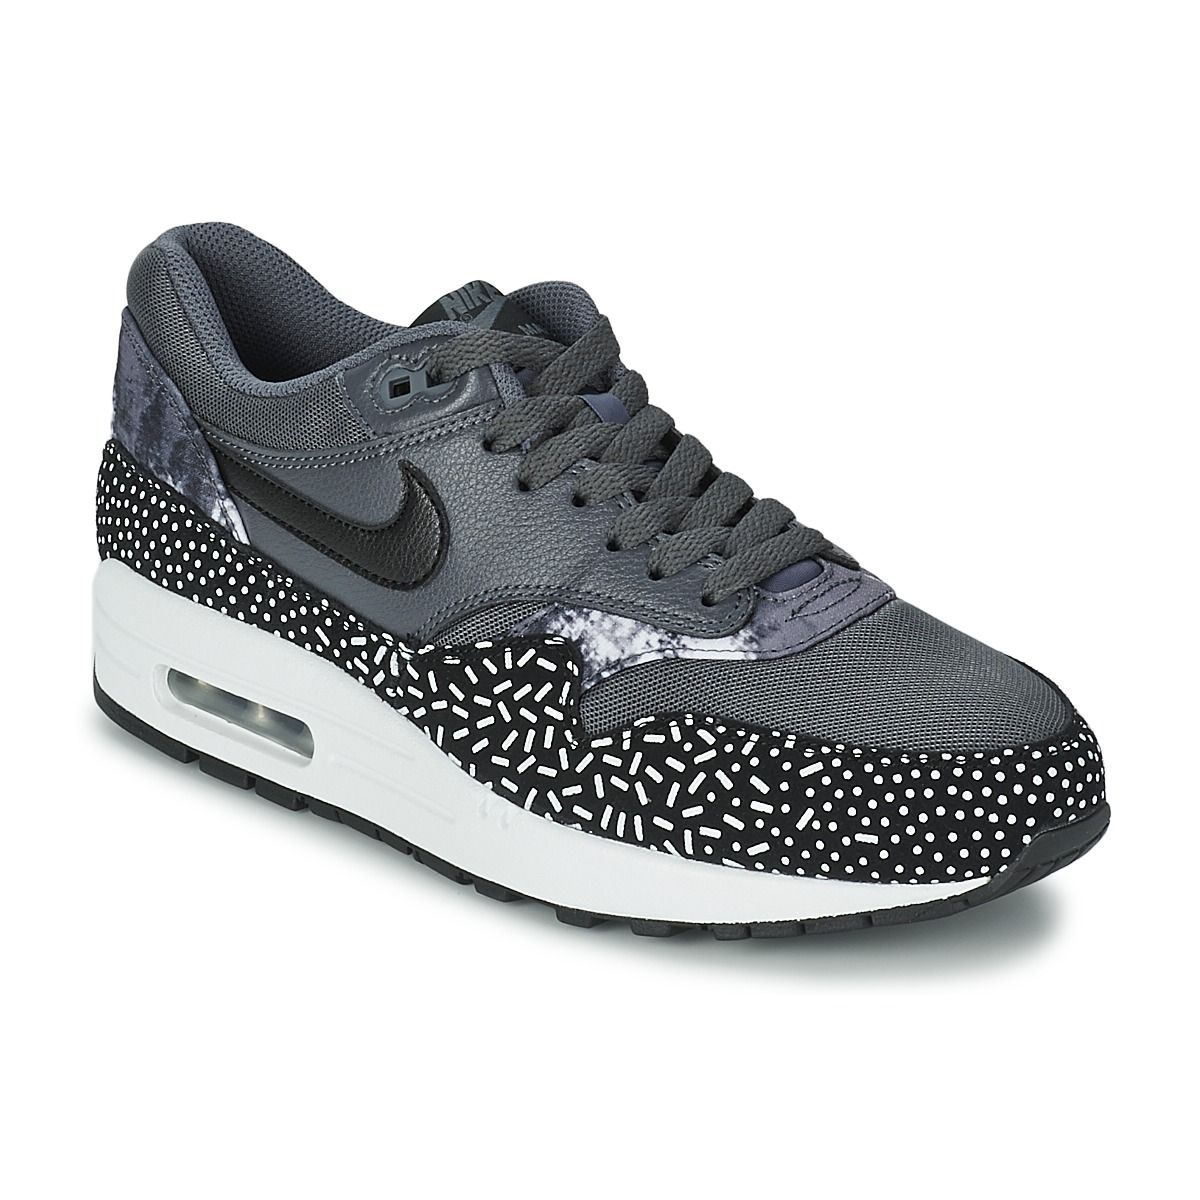 huge selection of 516ac ab52b Baskets basses Nike AIR MAX 1 PRINT Noir  Blanc prix promo Baskets Femme  Spartoo 139.00